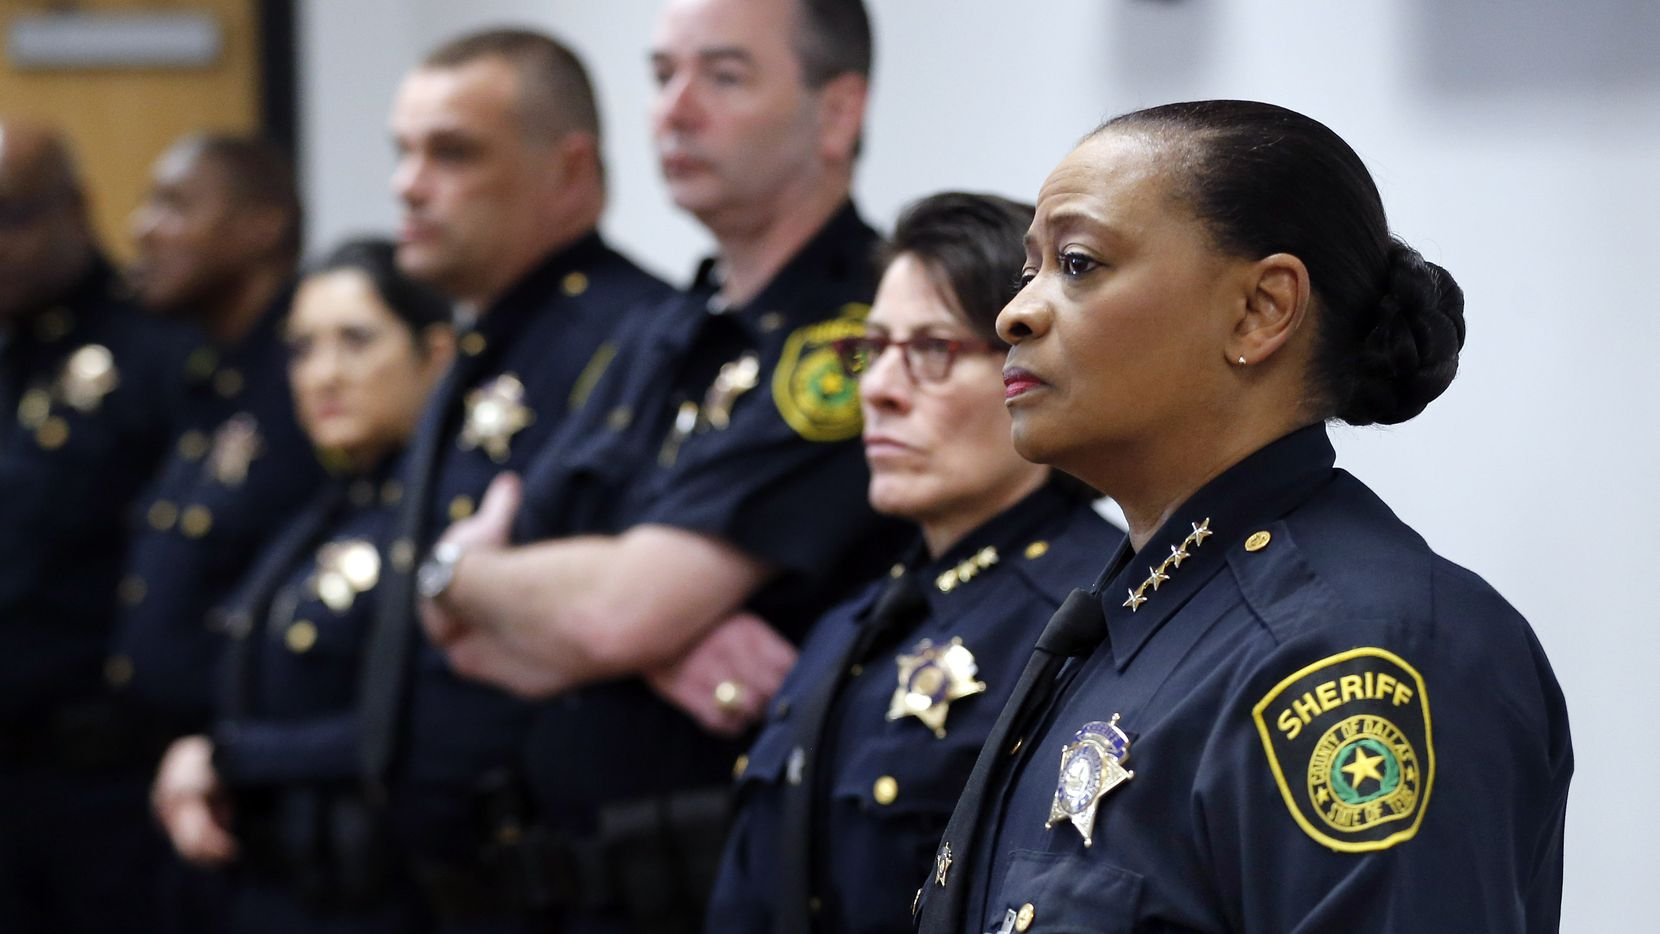 Alongside her deputies, Dallas County Sheriff Marian Brown listens during a press conference about the arrest of one of their own, deputy Austin Palmer, 33, during a press conference at the Frank Crowley Courts Building in Dallas, Friday, January 17, 2020.  Palmer was booked on charges of assault causing bodily injury and official oppression, Thursday, both are misdemeanors. The Sheriff explained Palmer mistreated a man in custody during a Òprisoner transport. He has since bonded out. (Tom Fox/The Dallas Morning News)